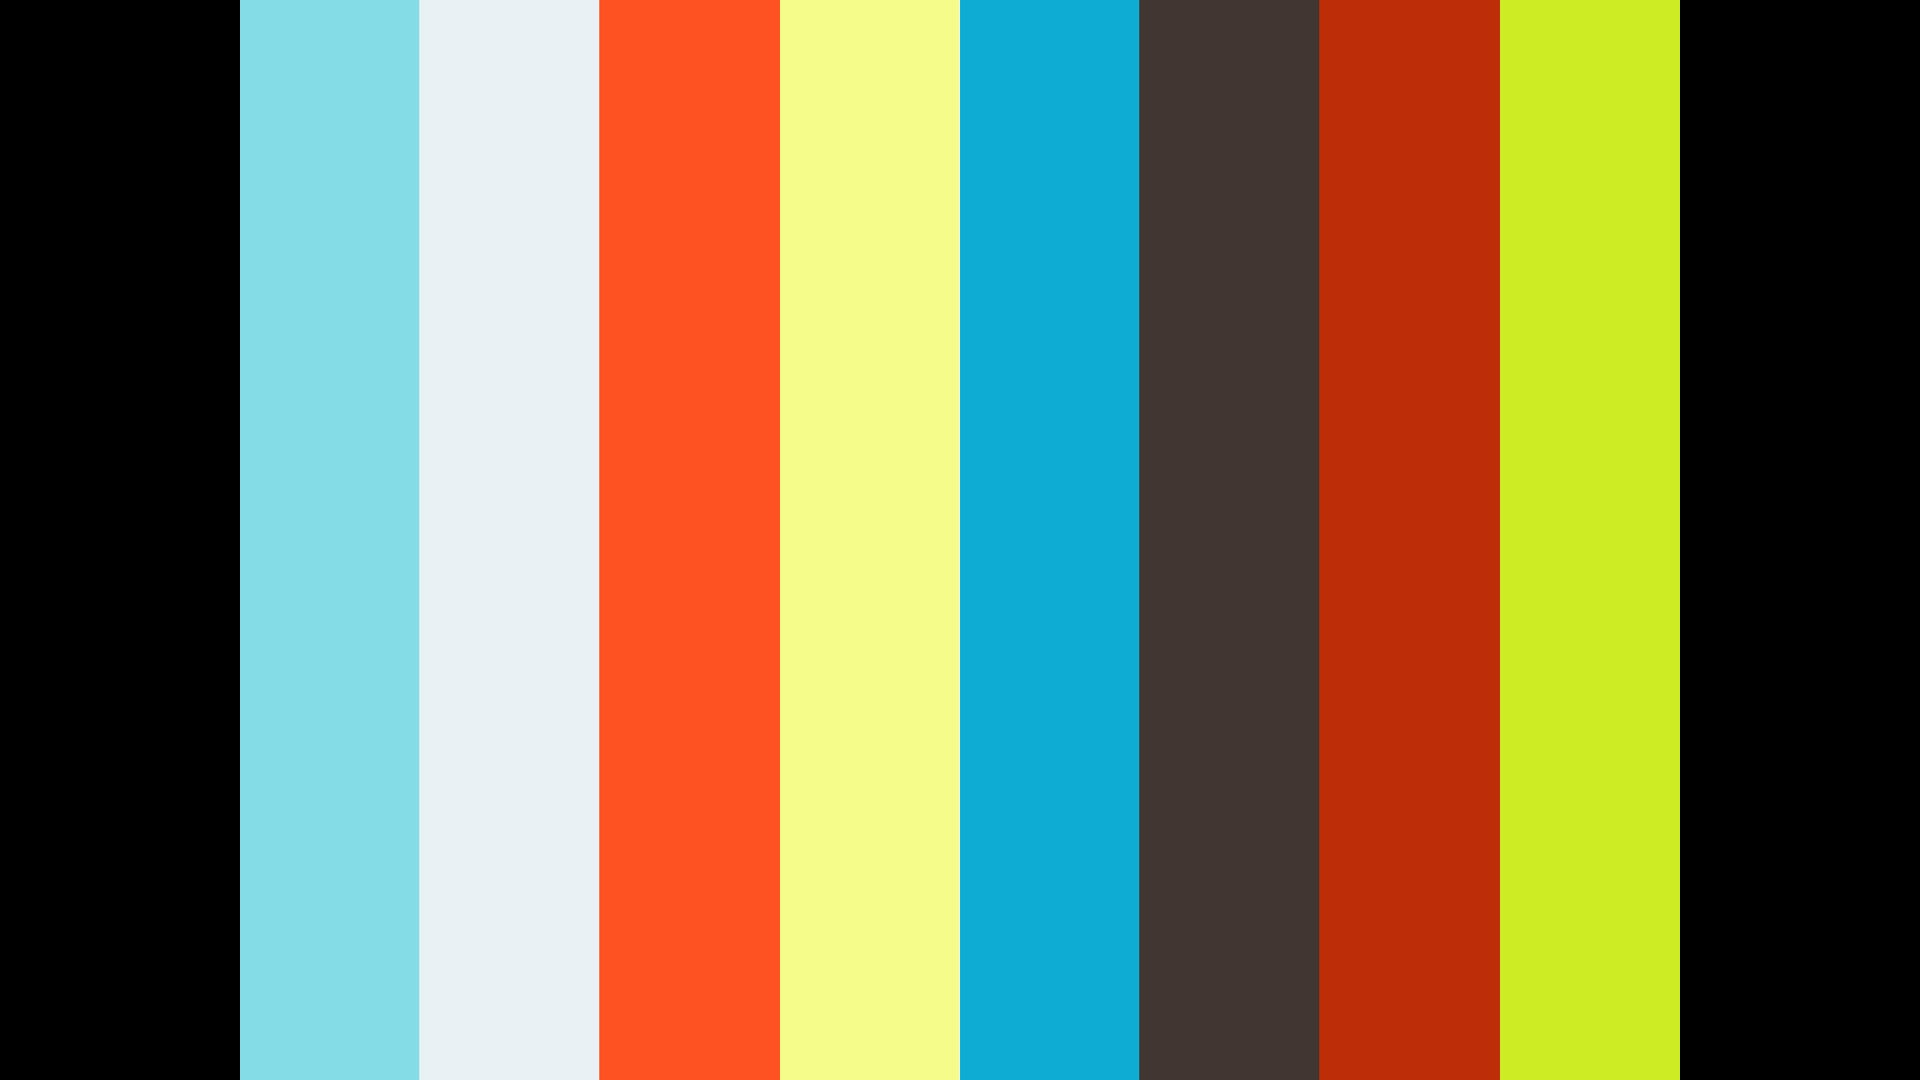 BUILDING FAITH 7-24-16